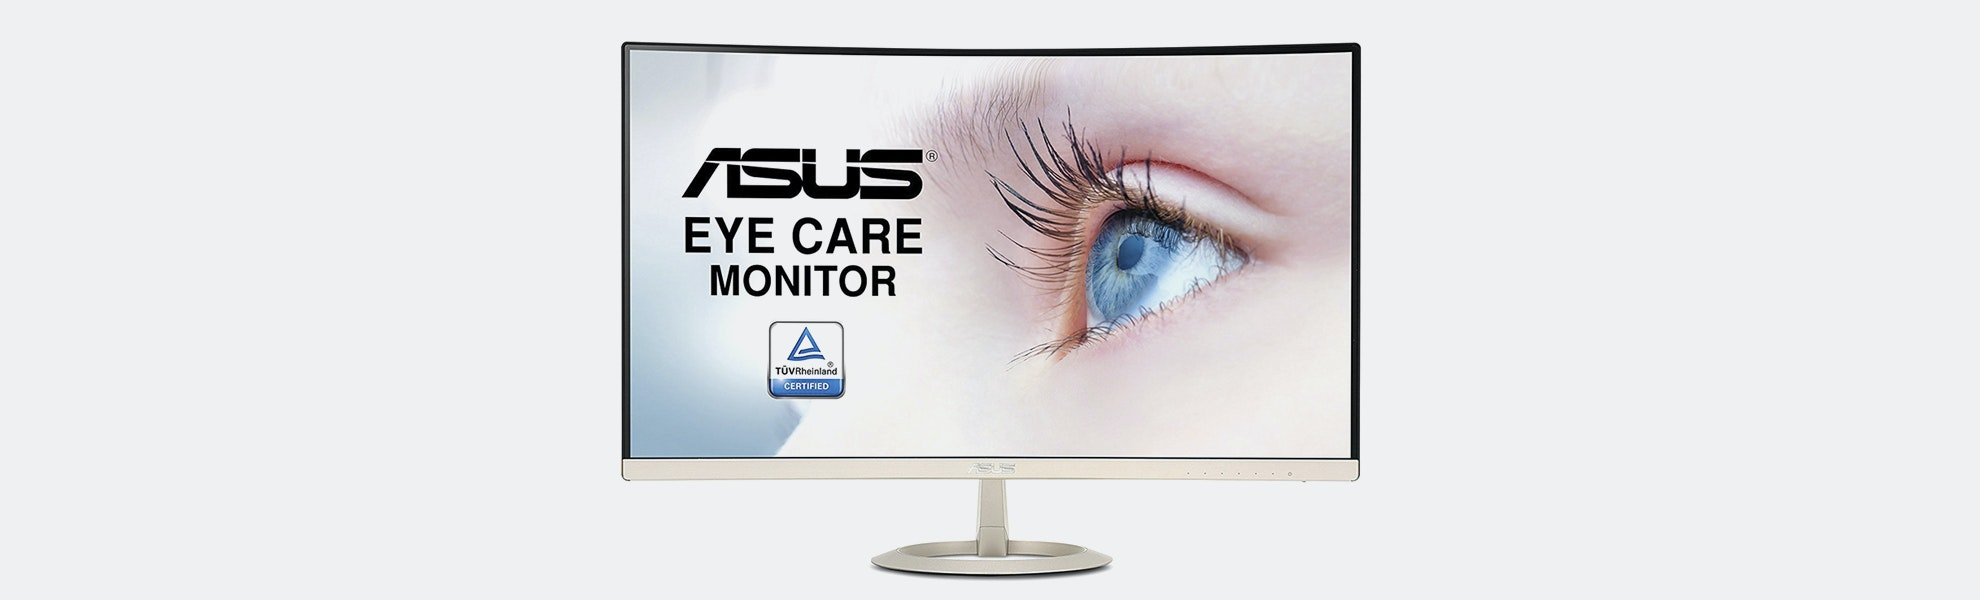 ASUS 27-Inch Curved Frameless Ultra-Thin Monitor